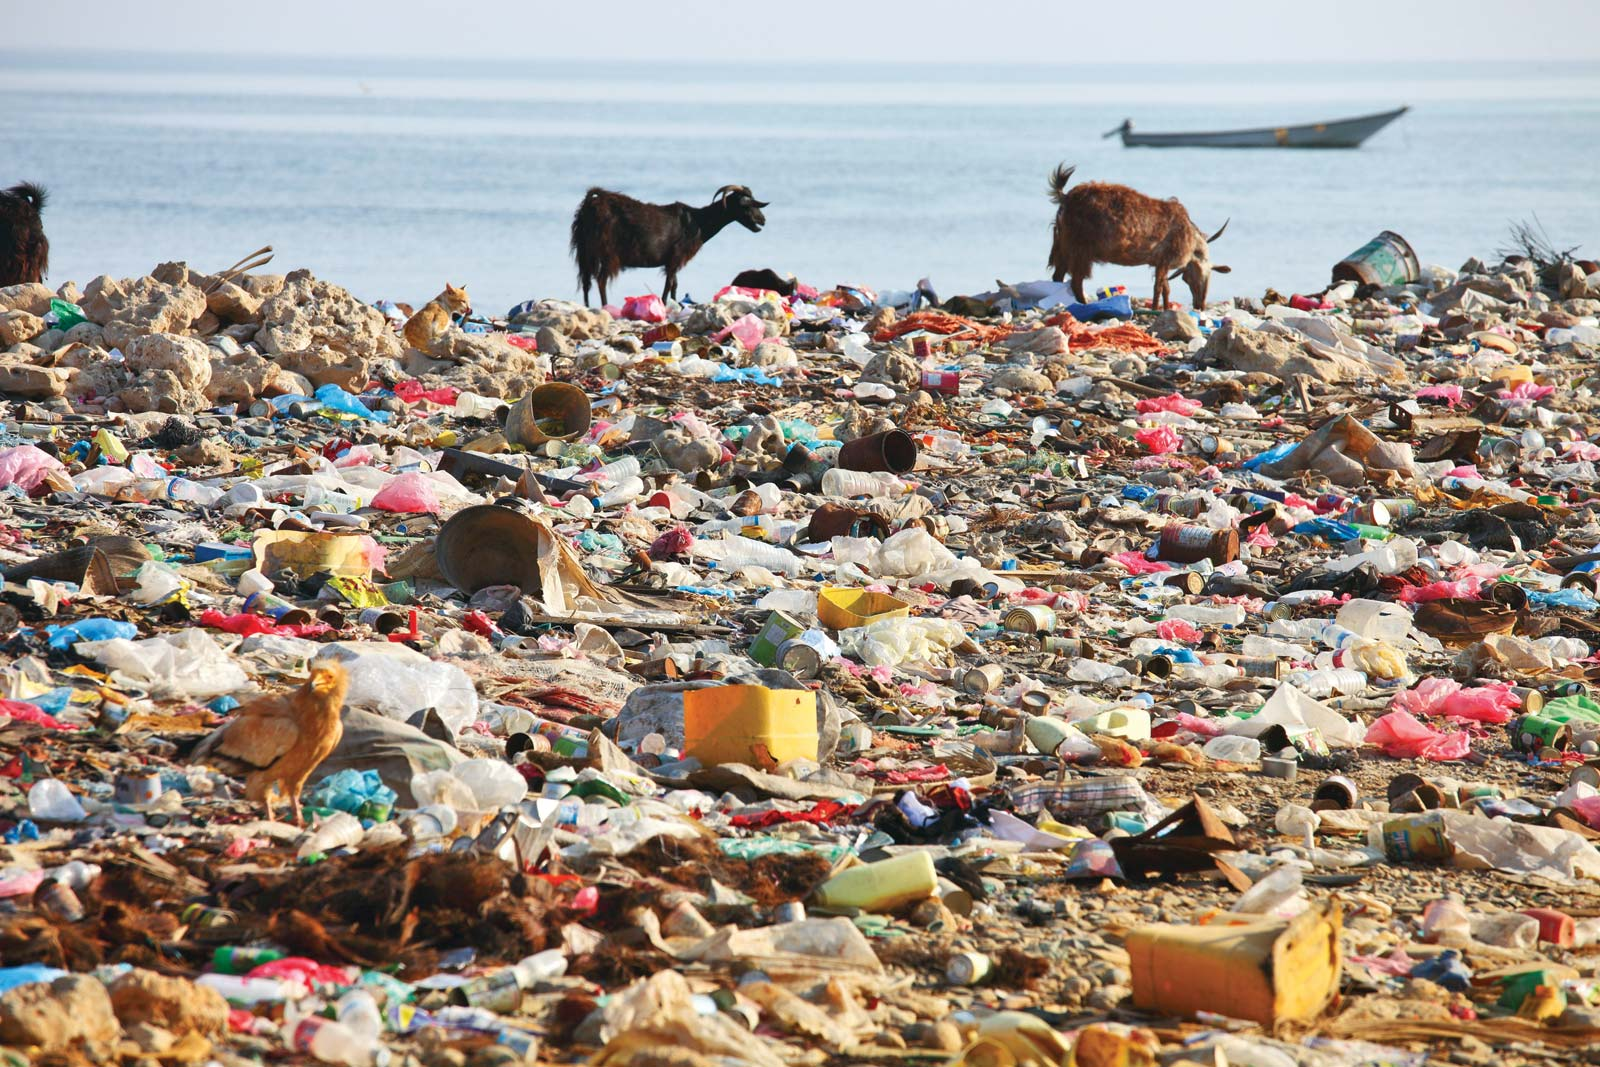 The menace of plastic pollution